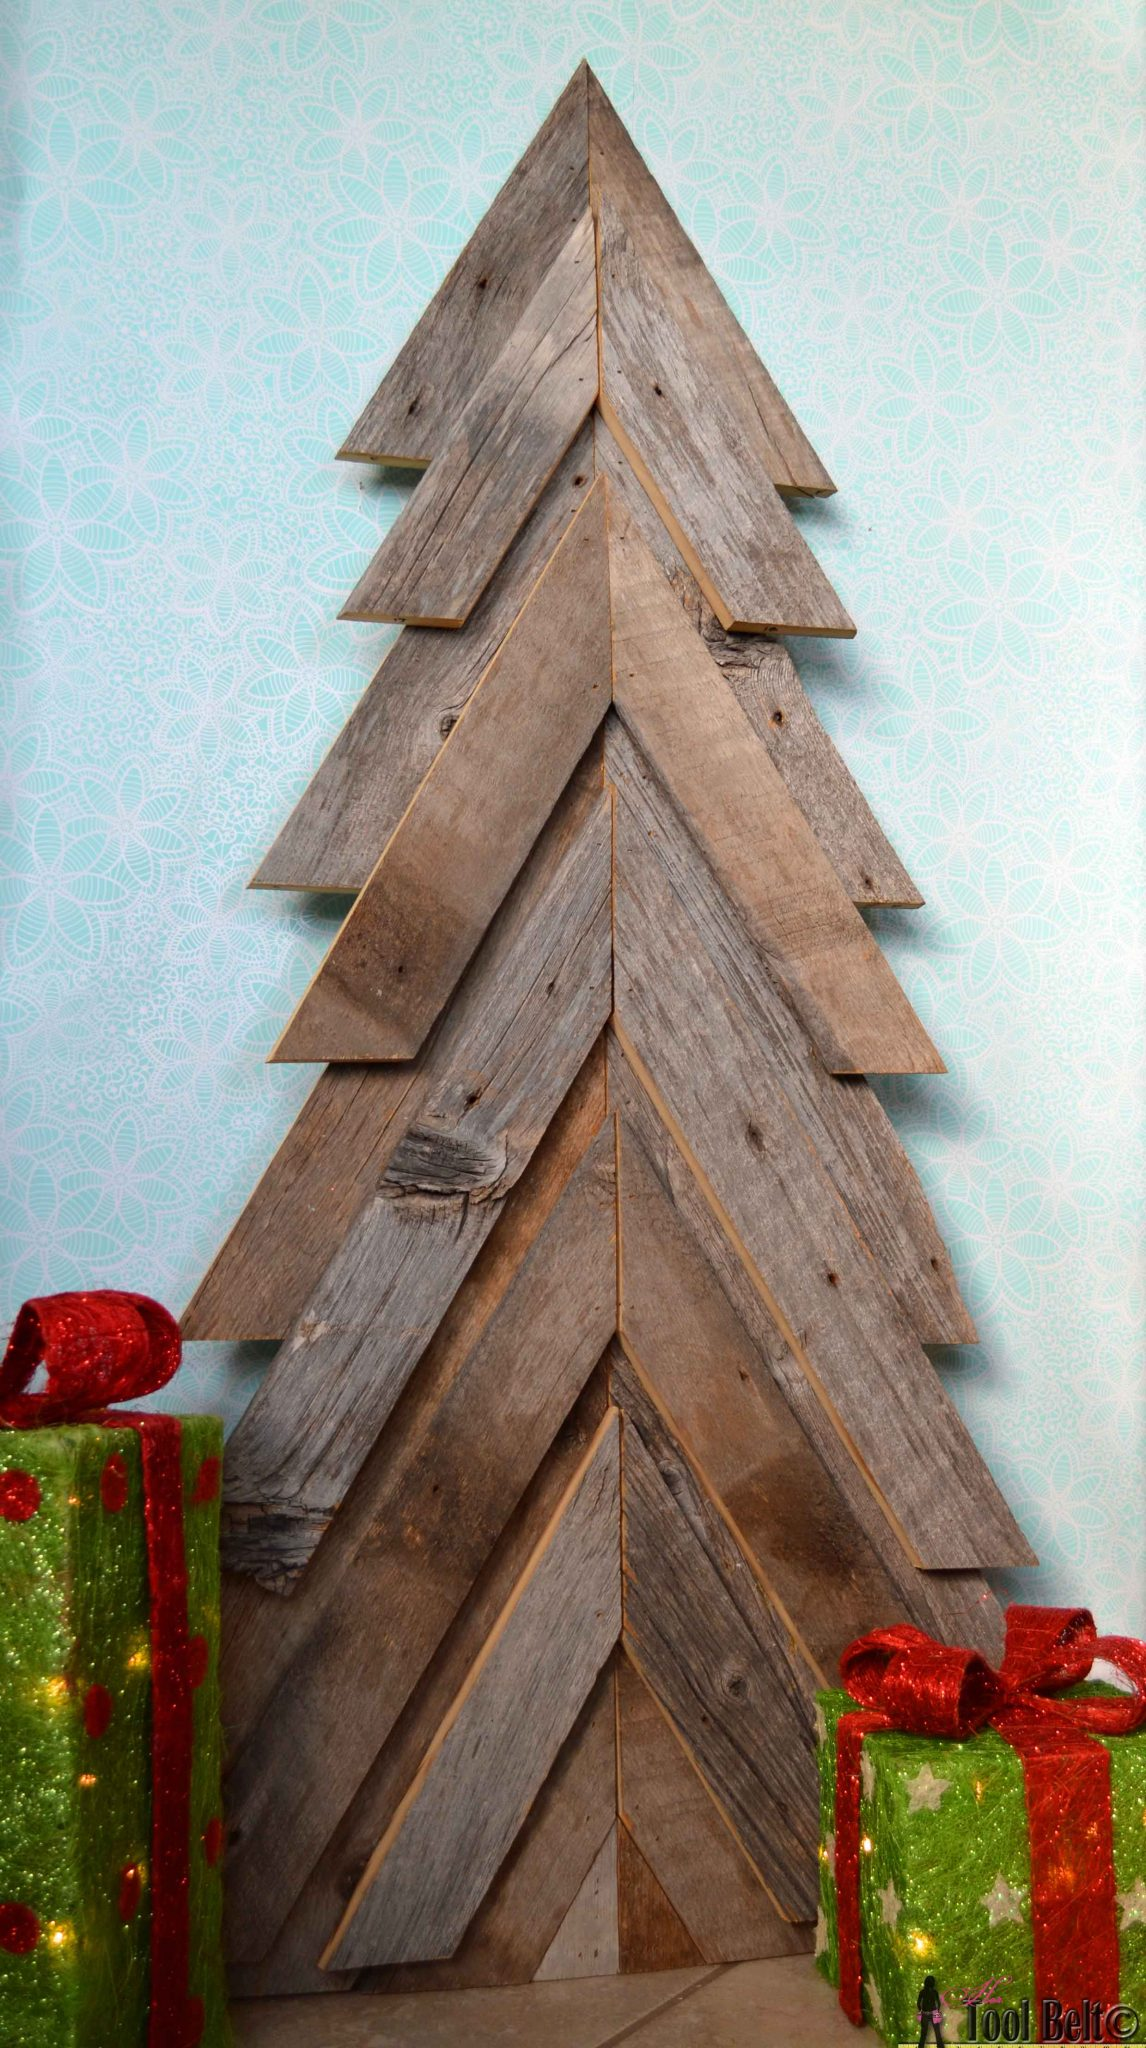 Rustic Christmas Tree - Her Tool Belt